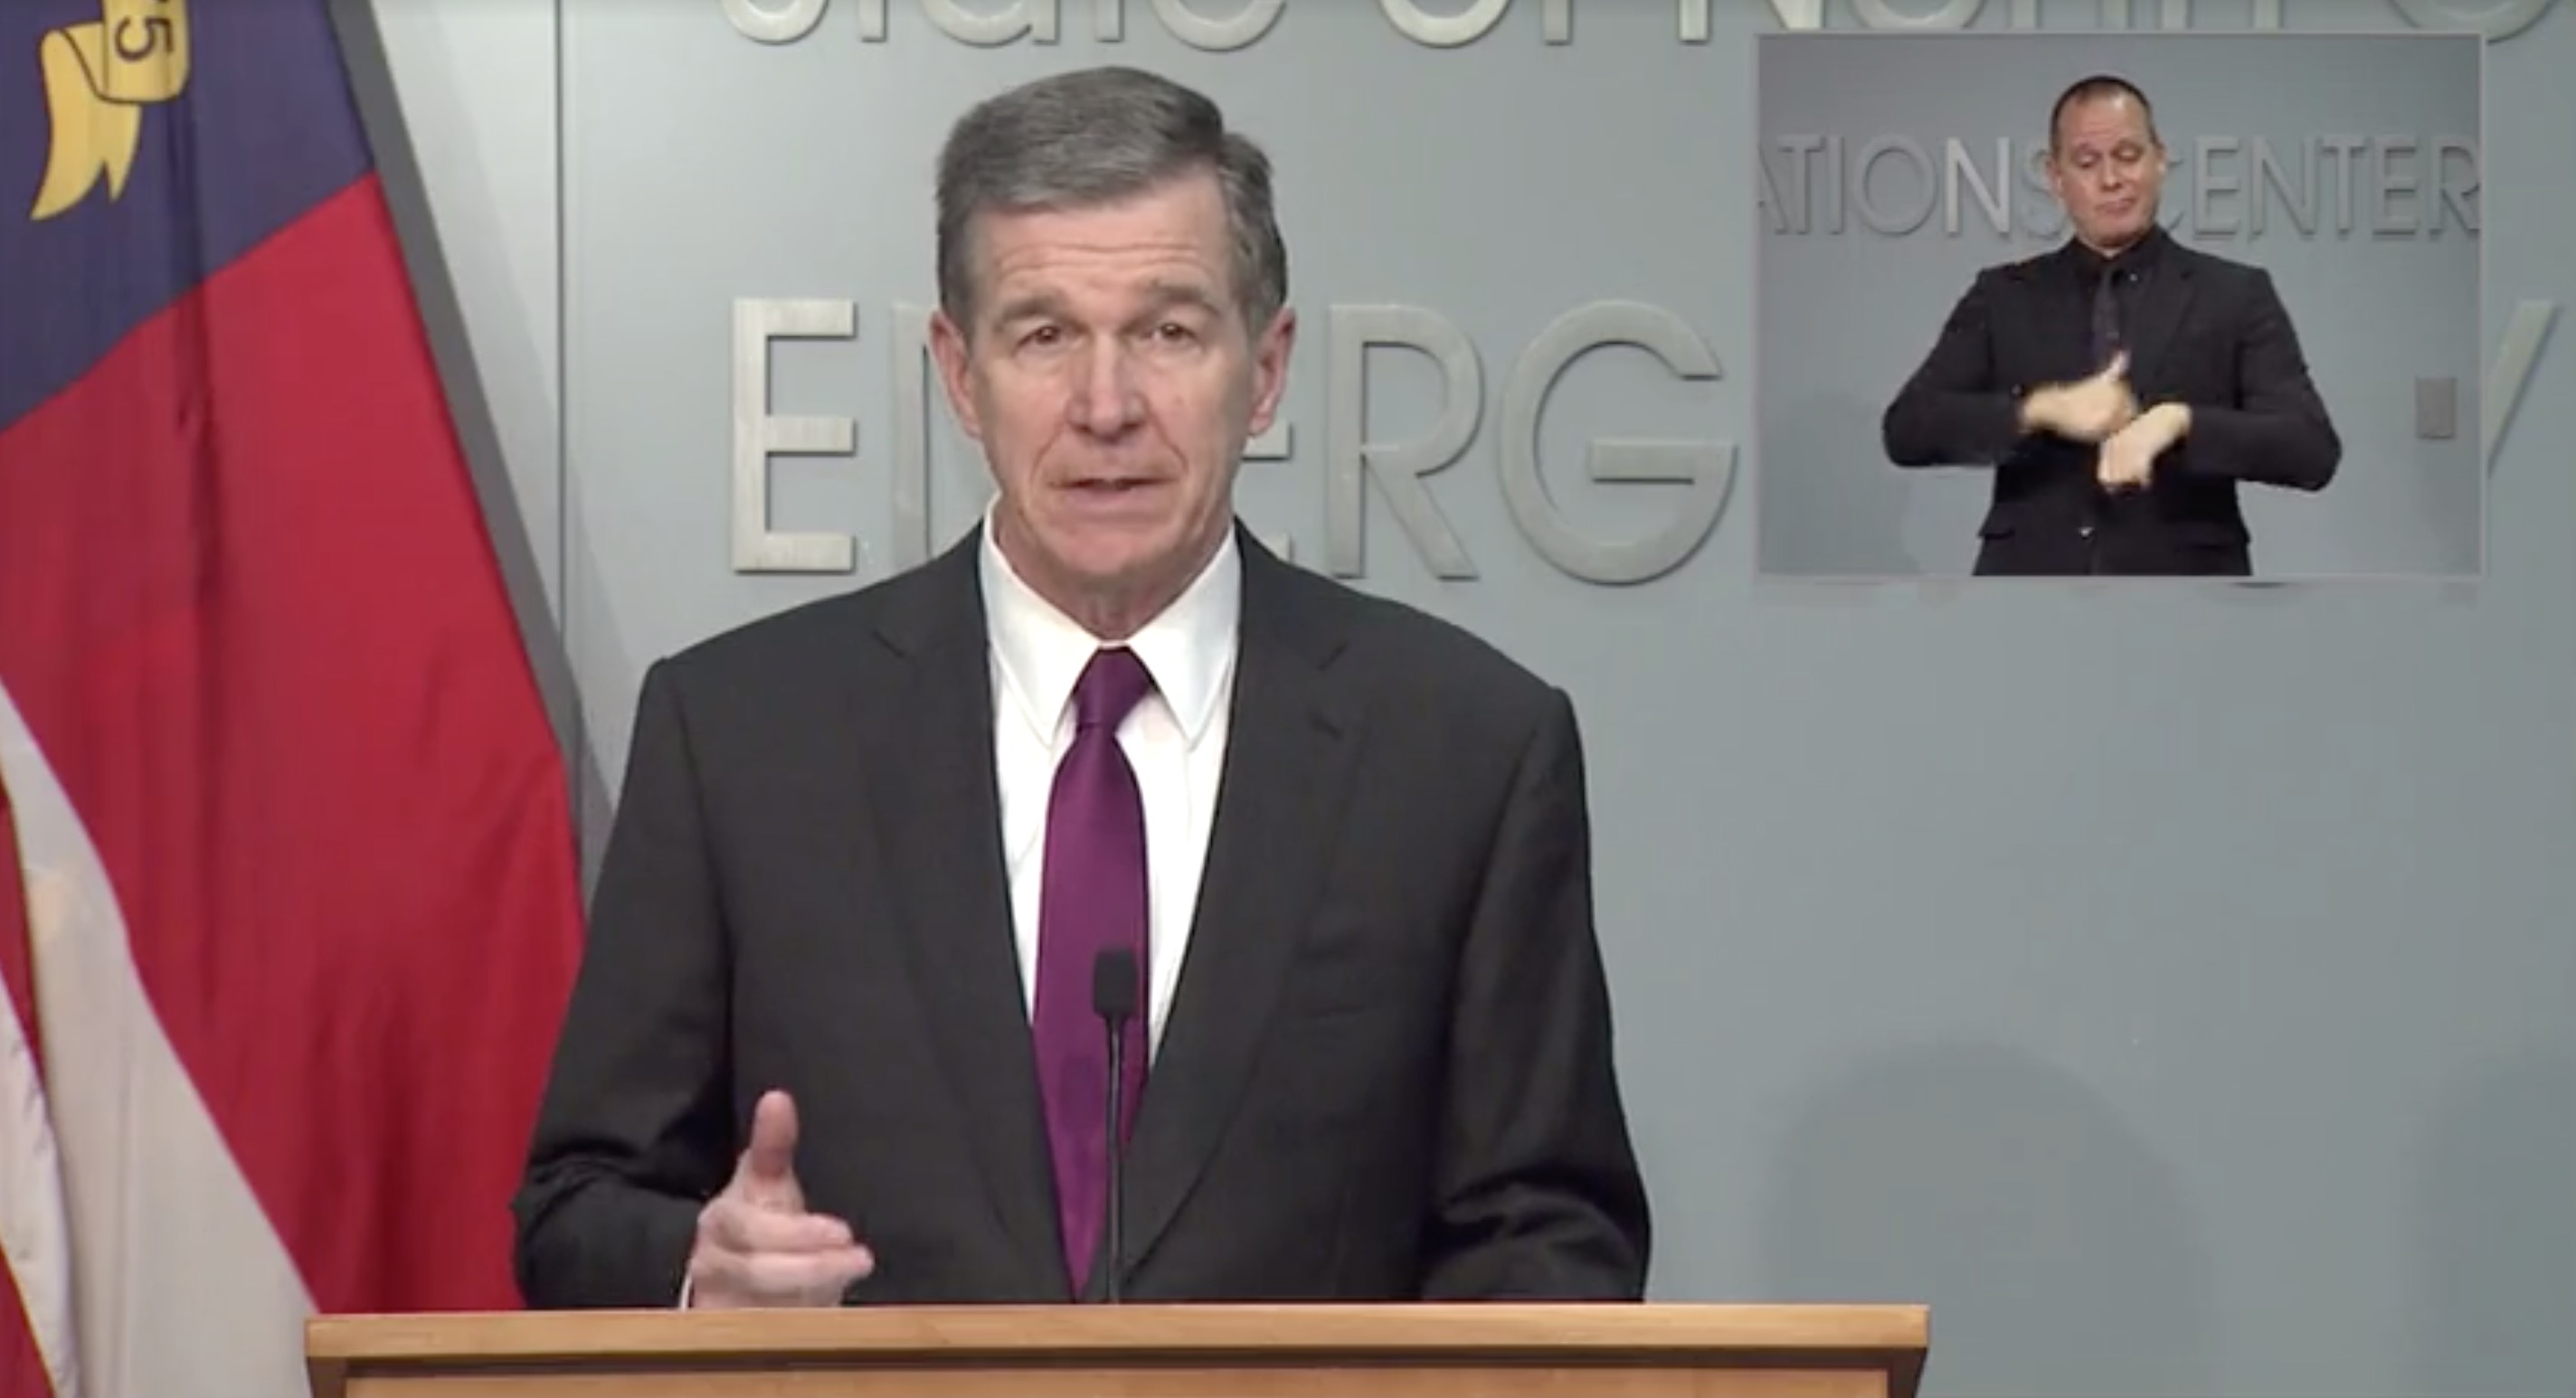 North Carolina Gov. Roy Cooper speaks during a press conference on September 22.